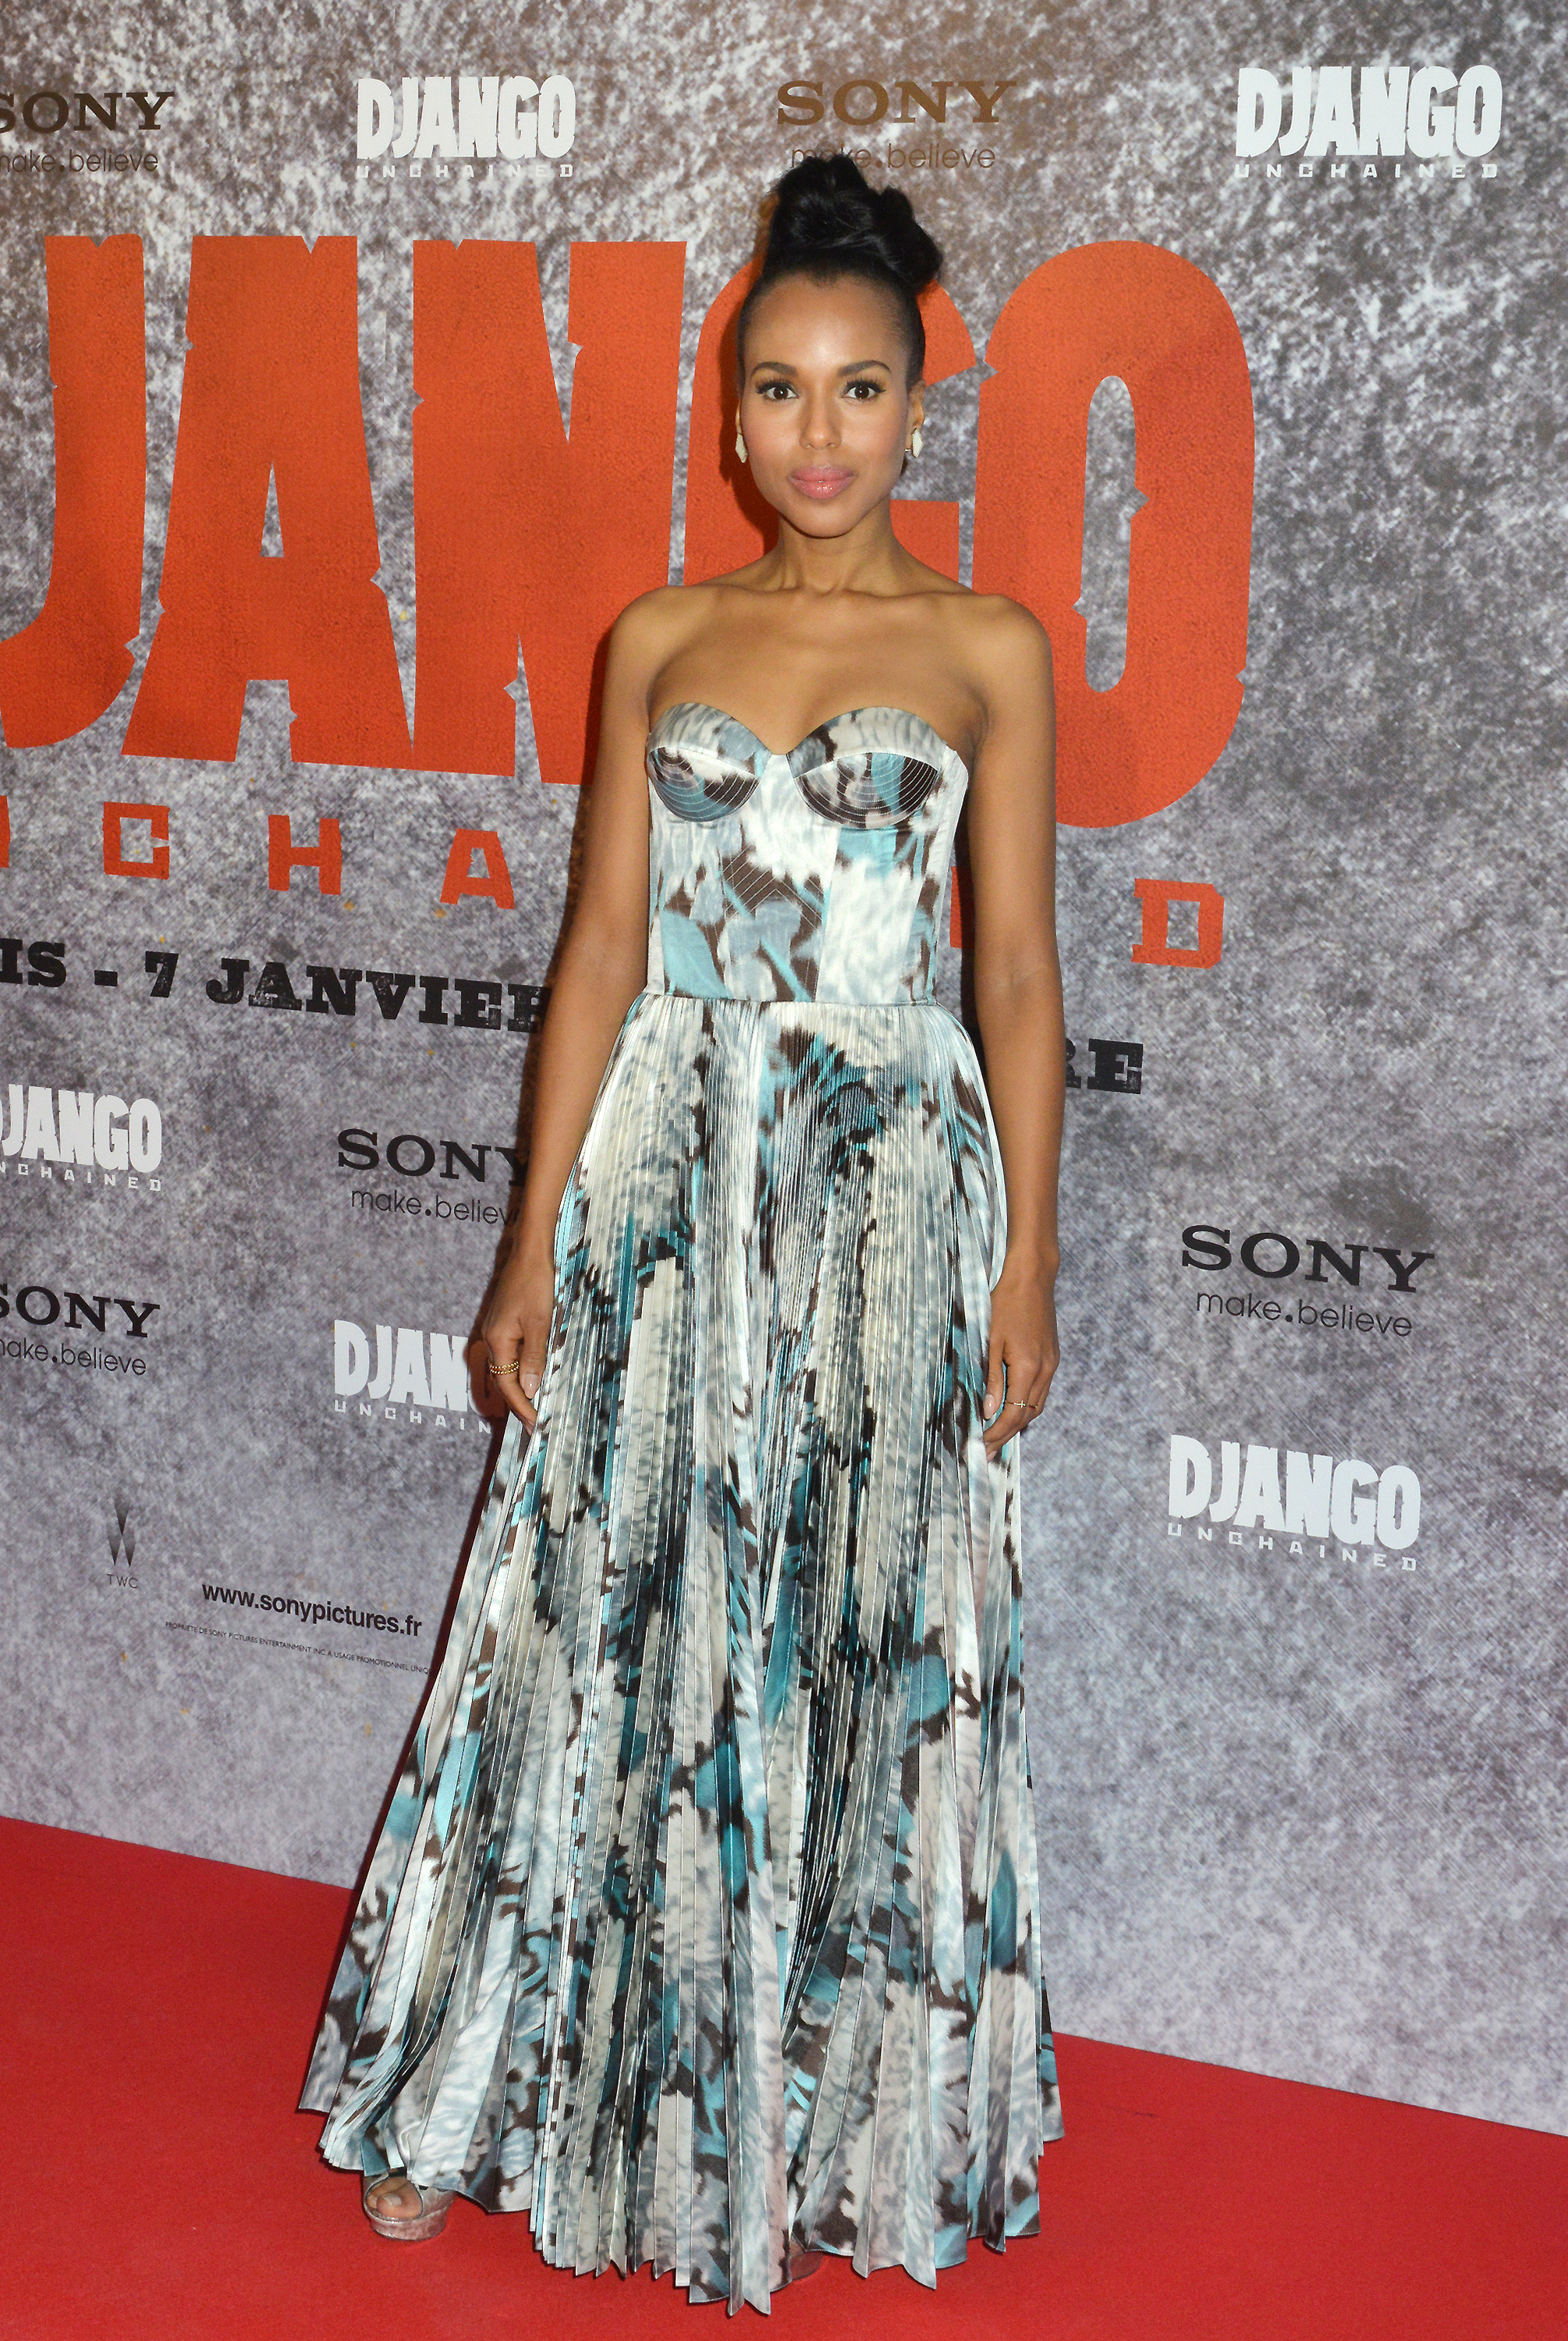 Kerry brought serious glamour to the red carpet for Django Unchained's Paris premiere — she wore a stunning, watercolor-print bustier dress from Rochas's Spring '13 collection, proving once again that sometimes, all it takes is one great gown to make a statement.